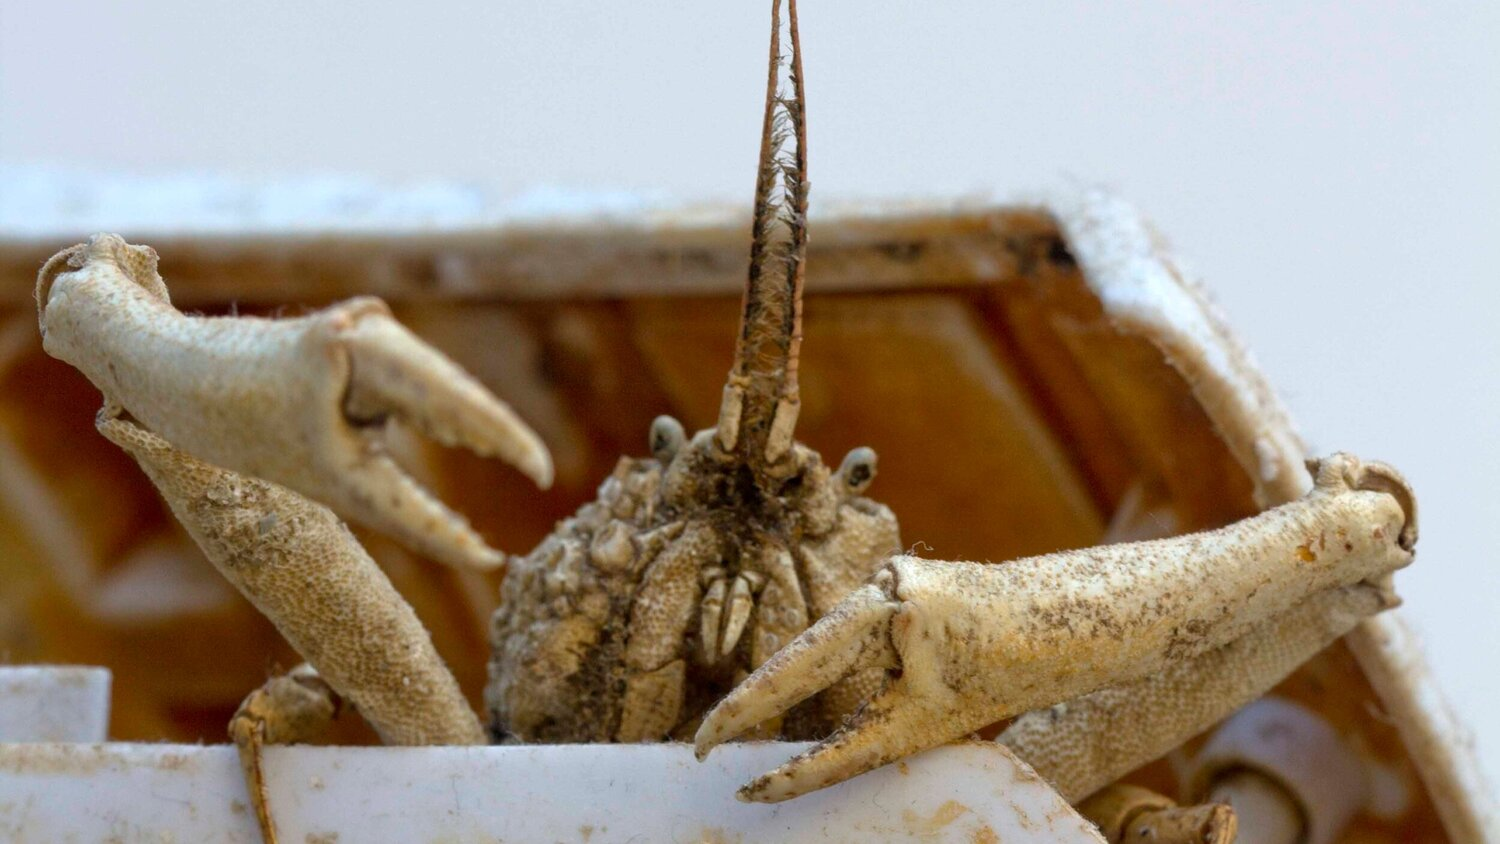 Crab Museum: An Exhibition By Rex Birchmore